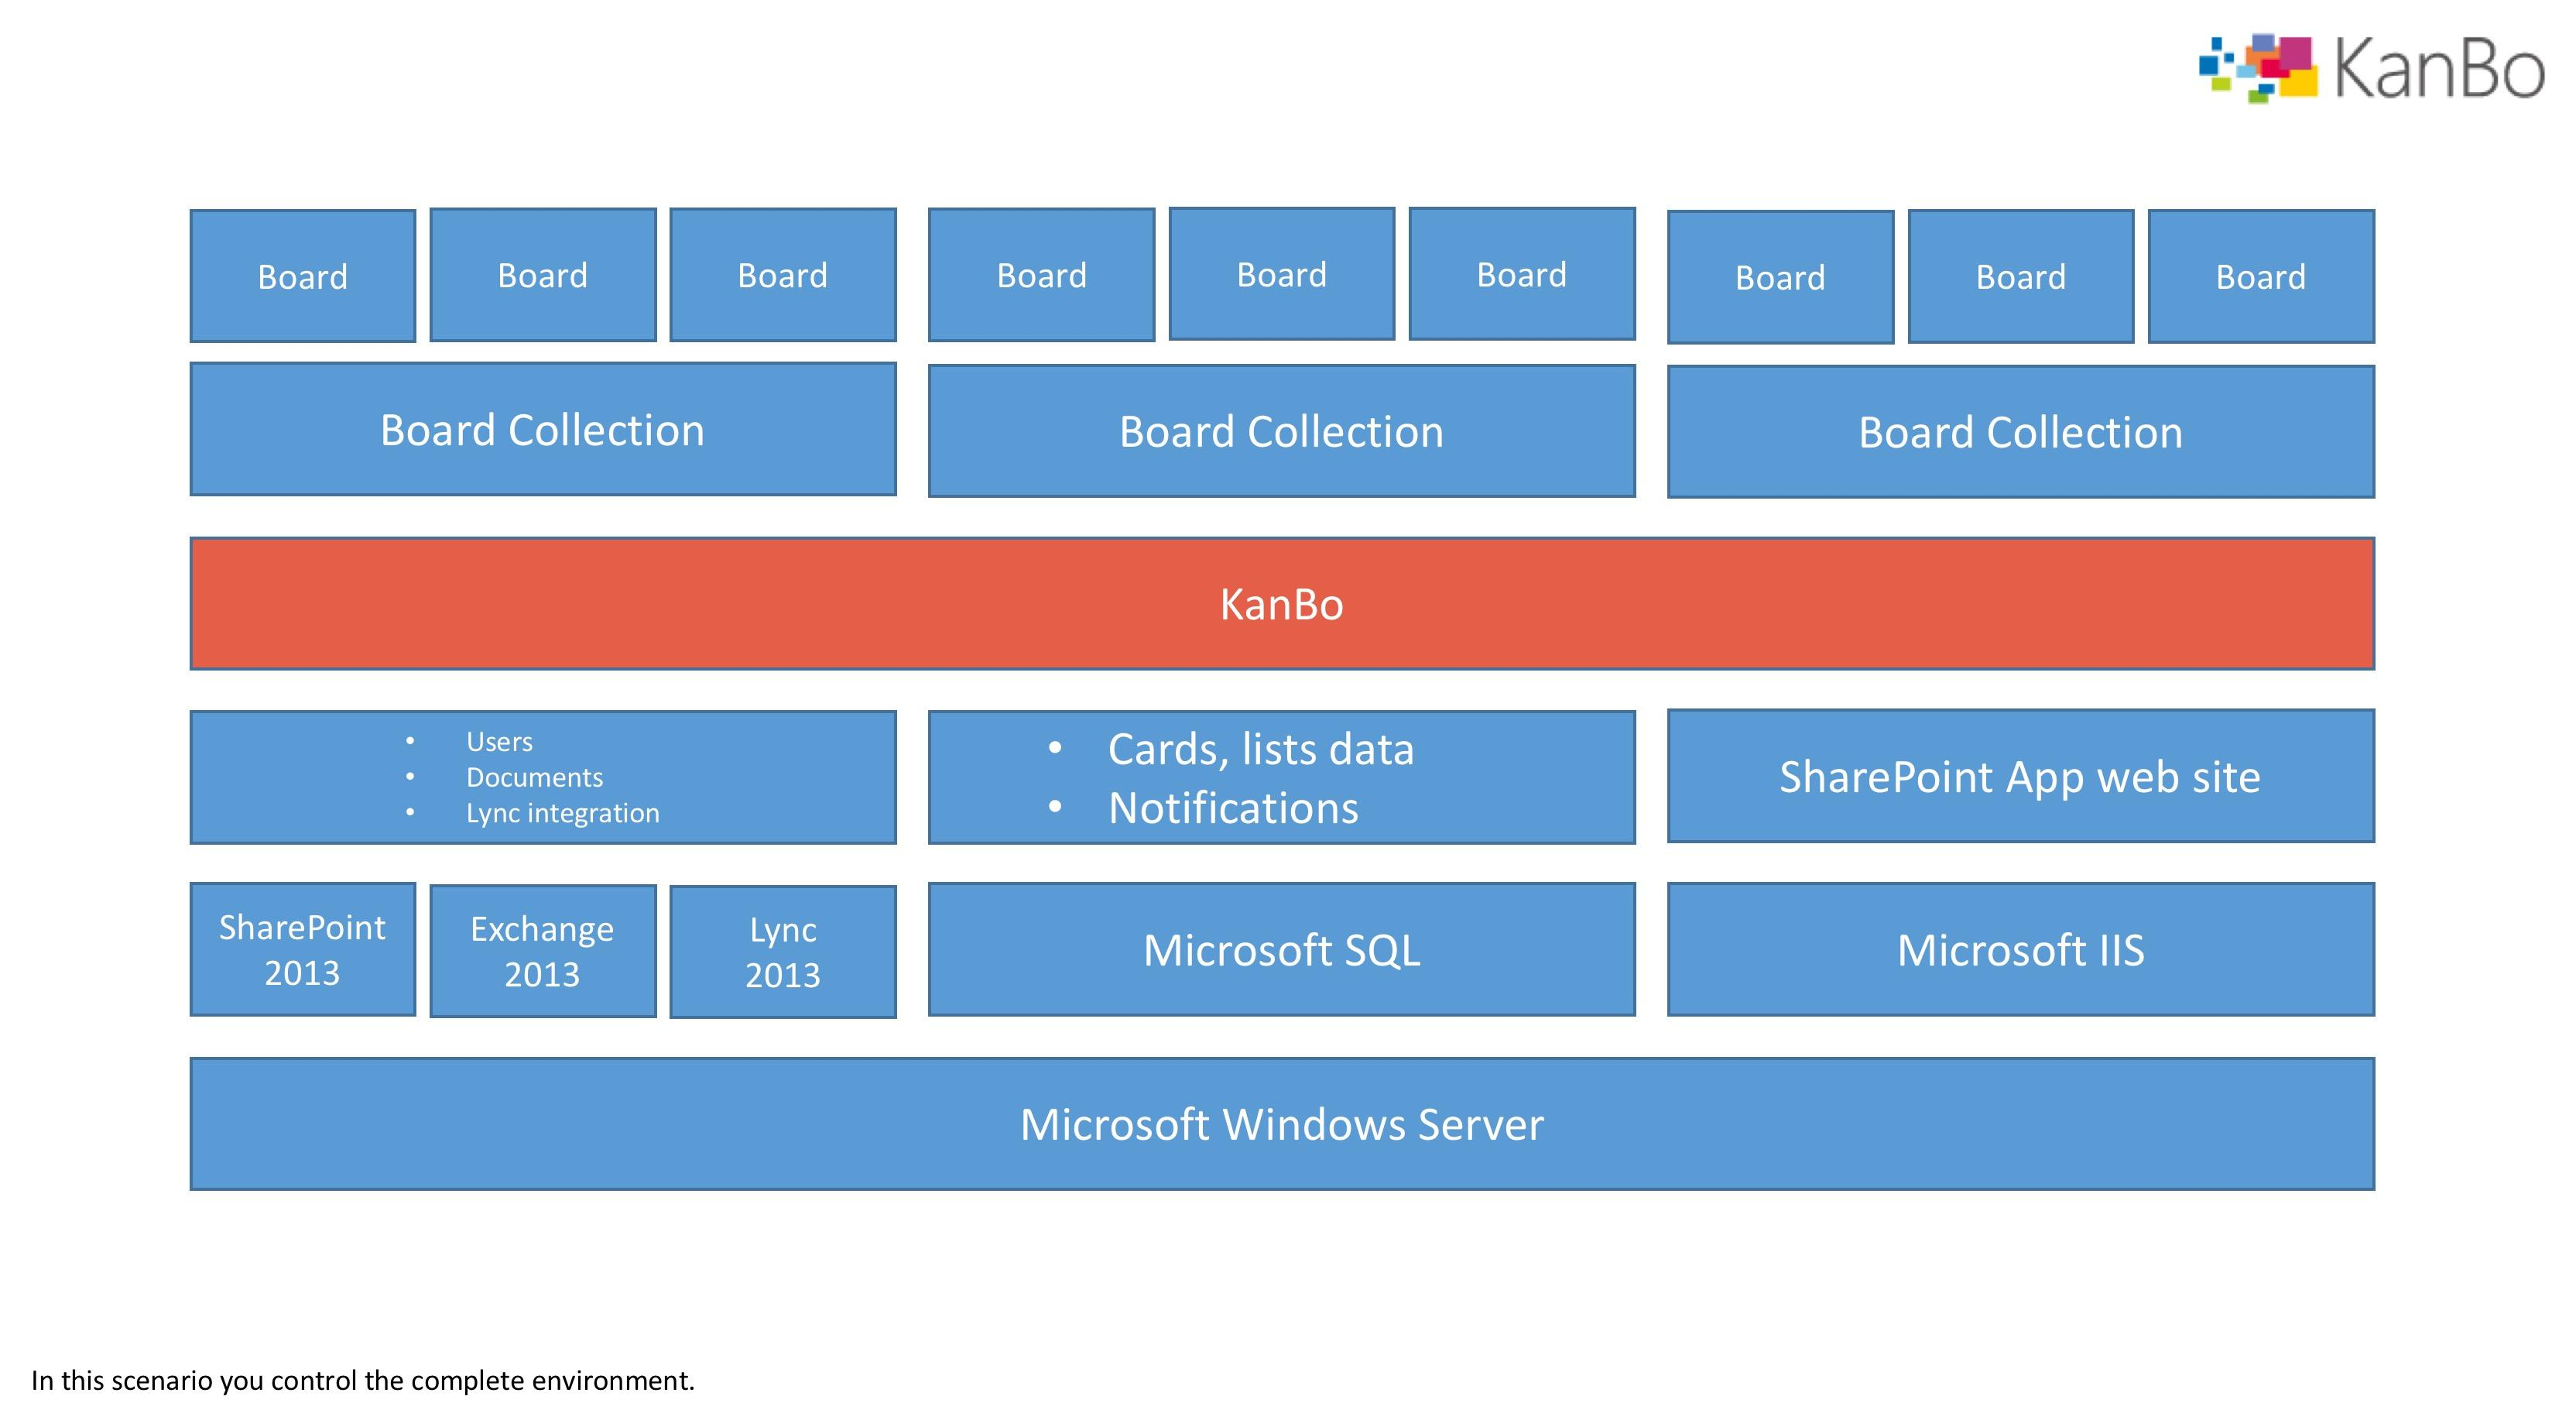 KanBo installation architext stack diagram KanBo installation structure on premises on prem SharePoint Office 365 Azure